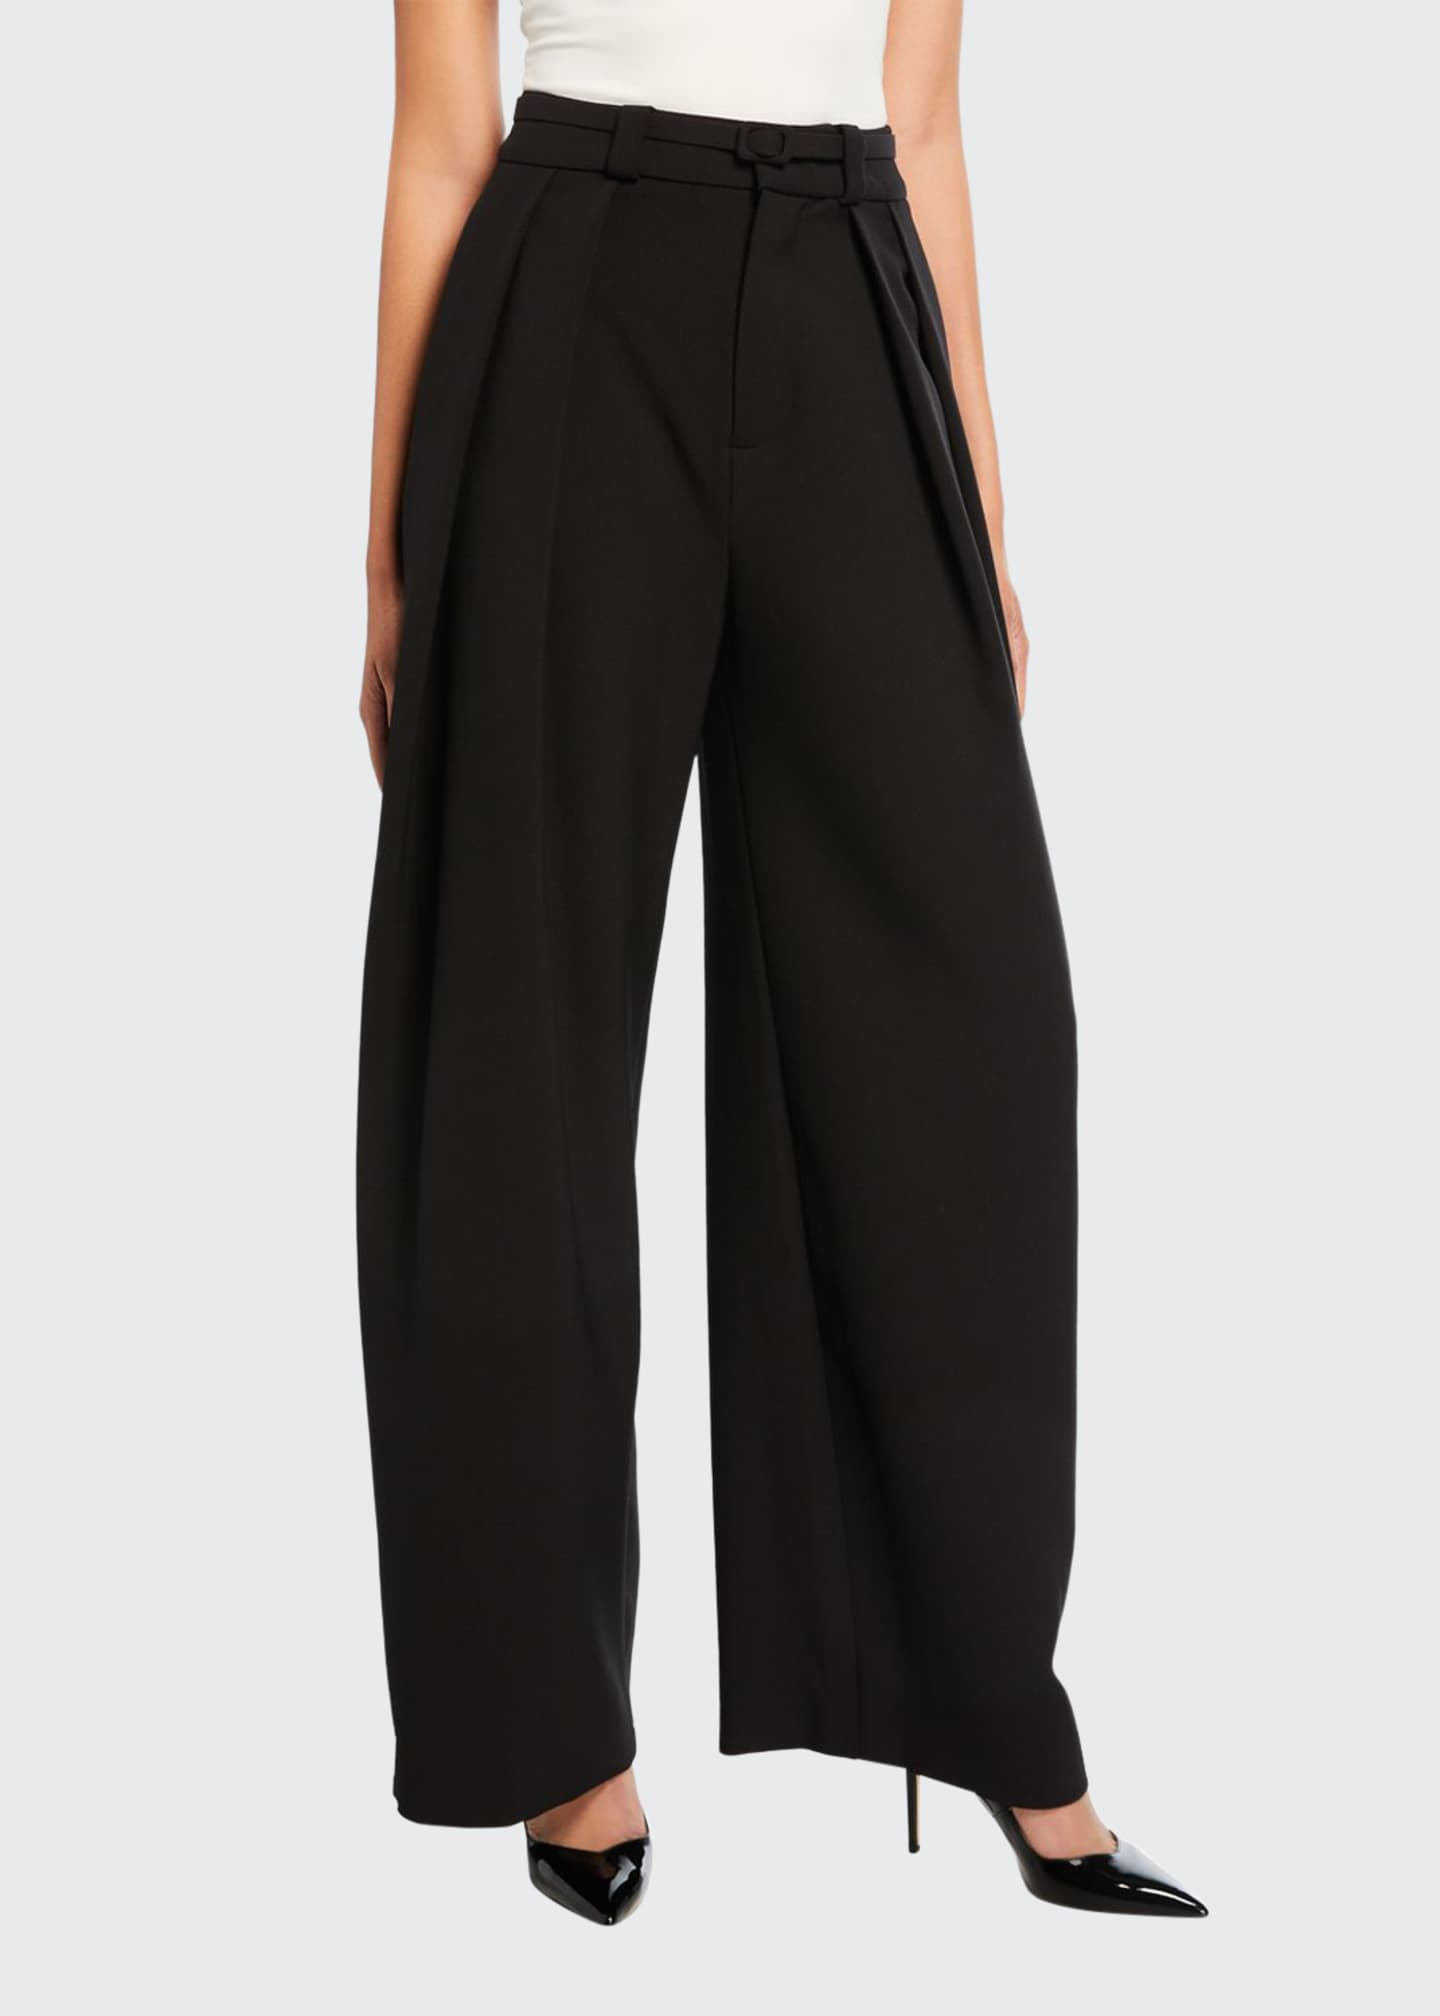 Carmen March Crepe Wide-Leg Pants